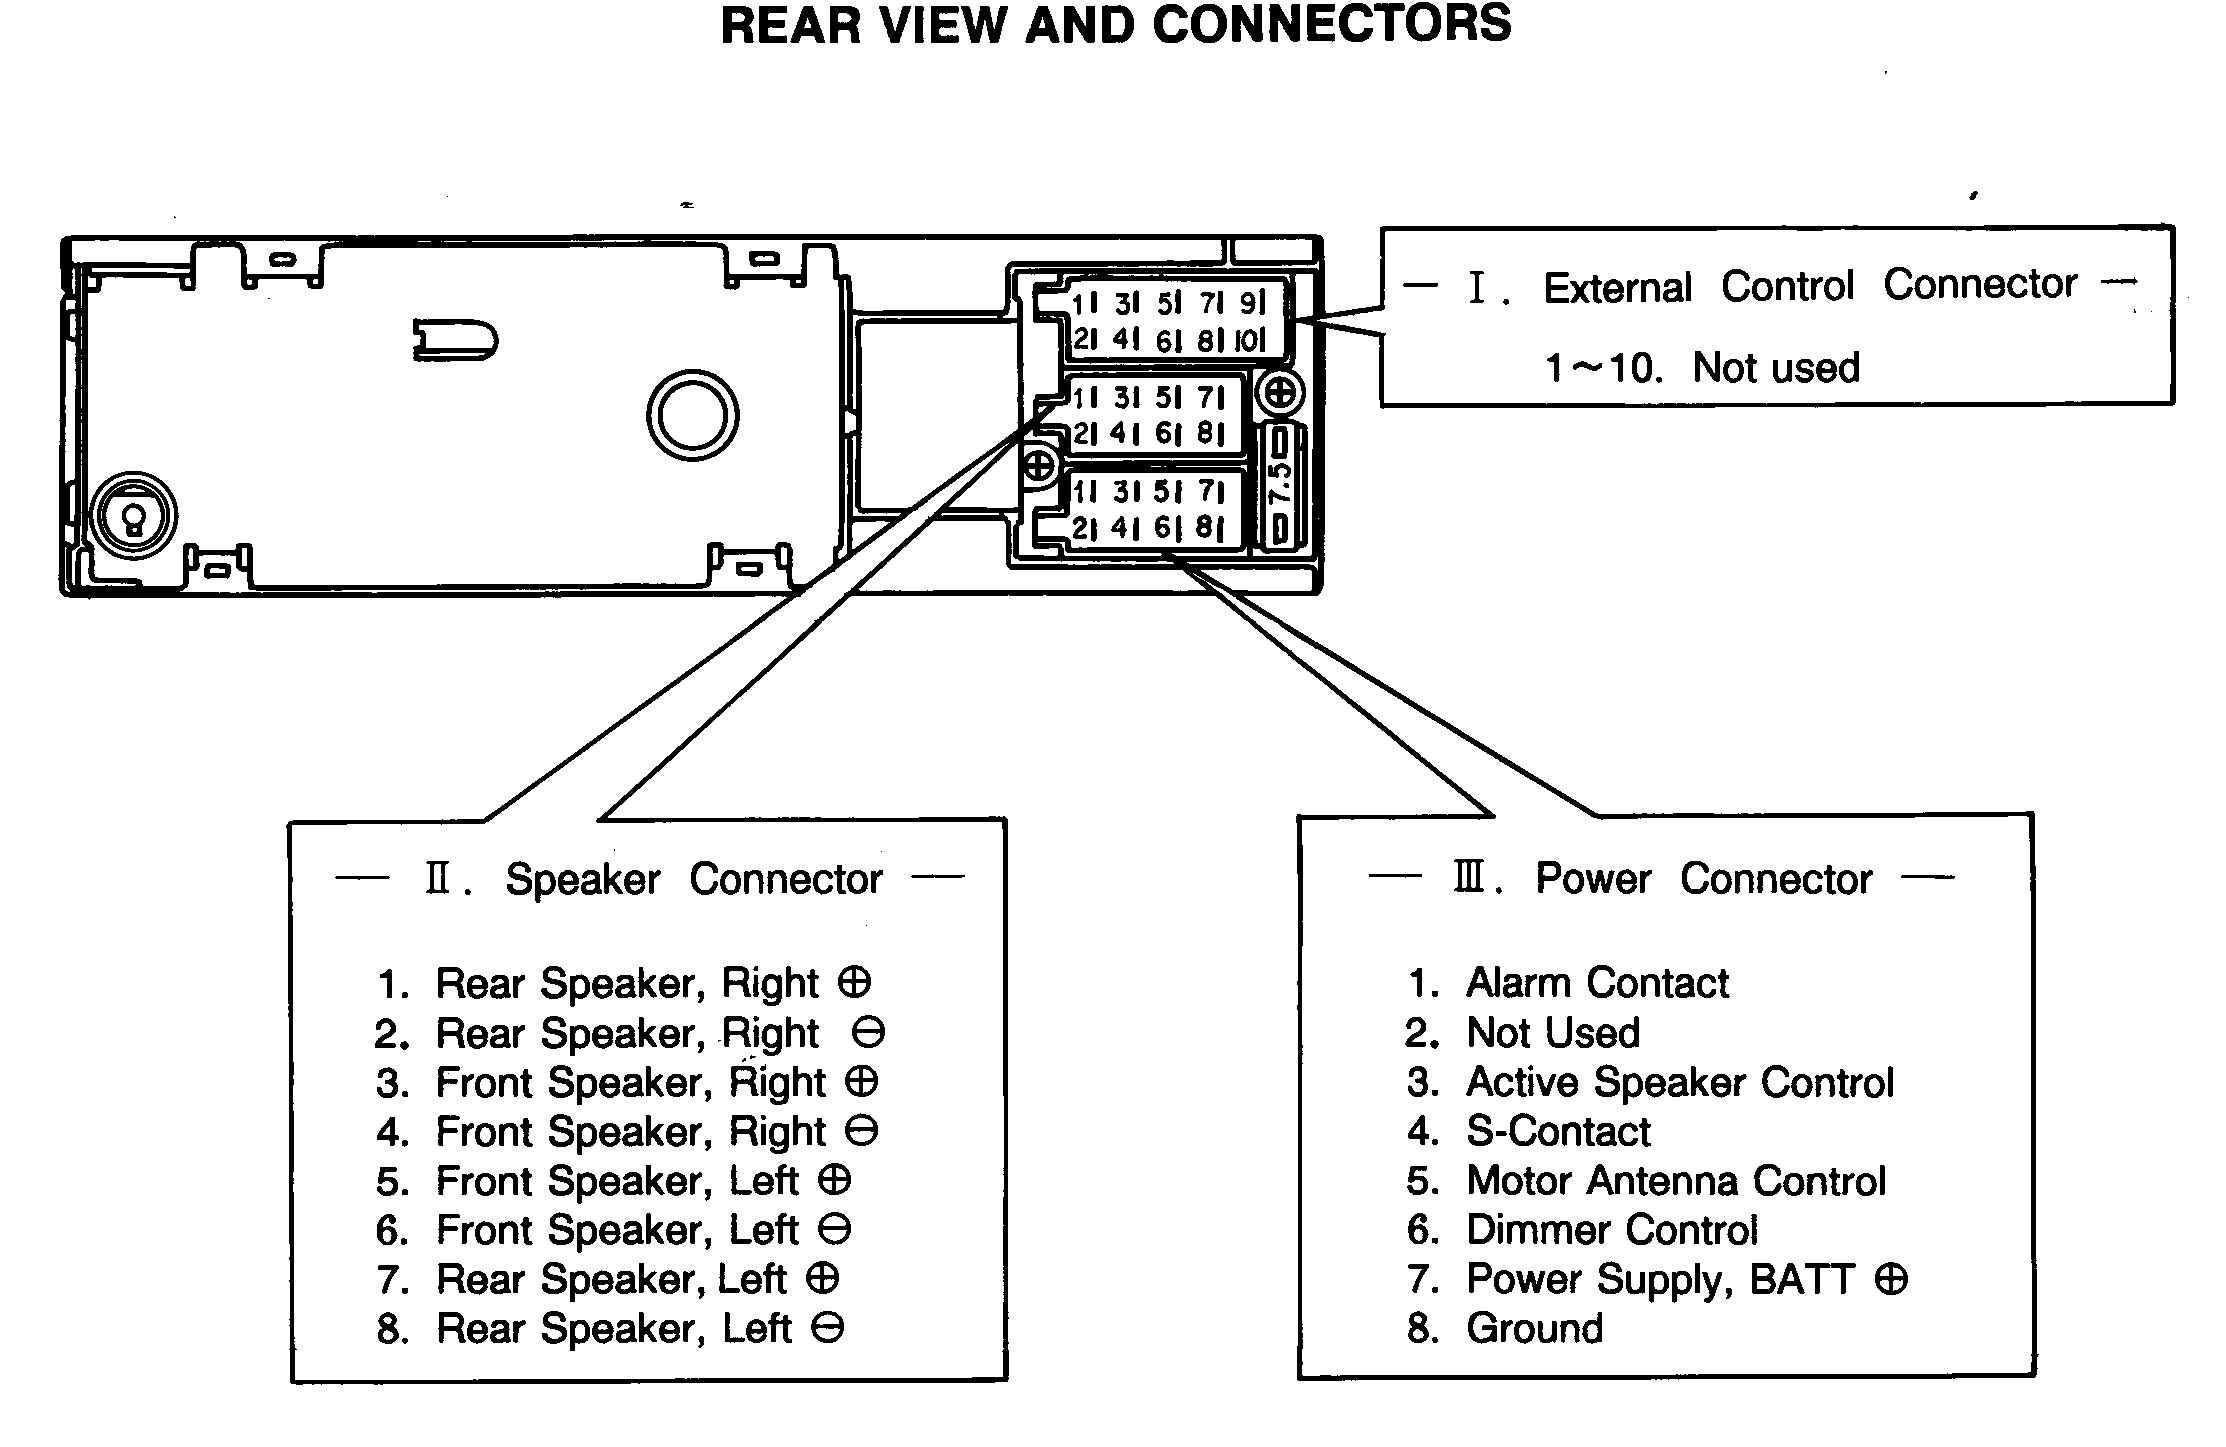 2001 Ford F250 Radio Wiring Diagram from detoxicrecenze.com